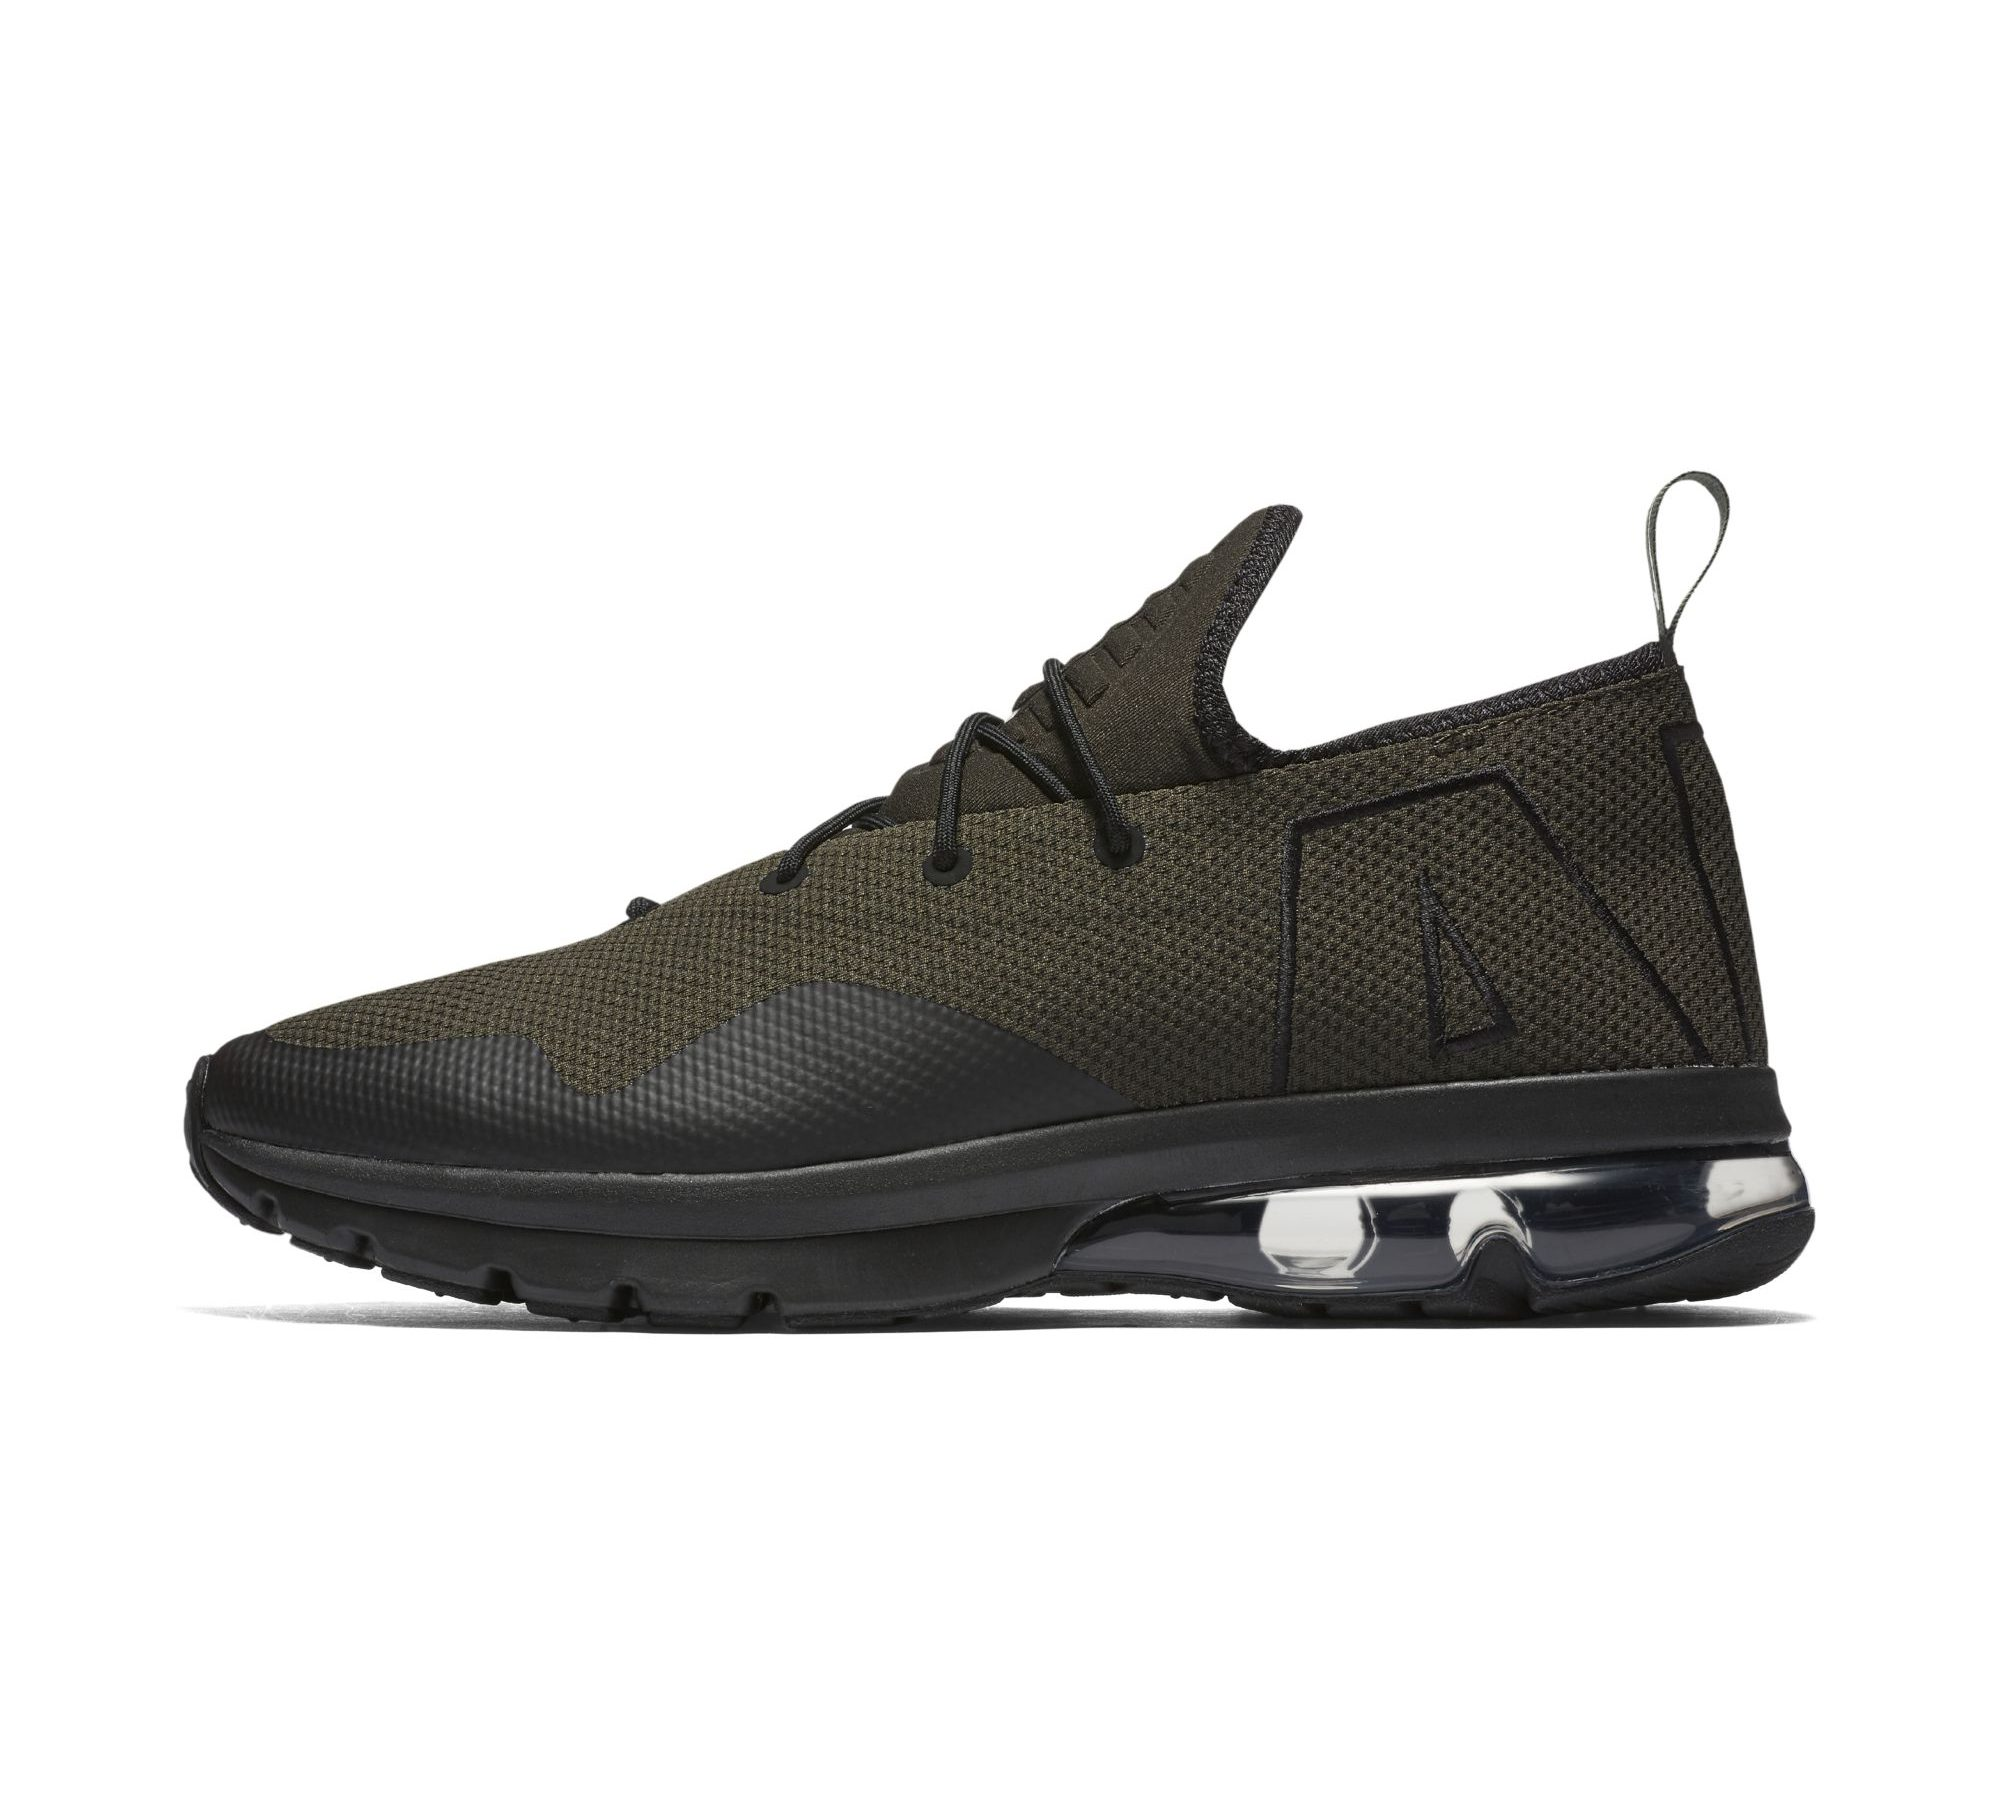 f6978c2594 This Nike Air Max Flair Refresh Moves the Oversized Branding ...